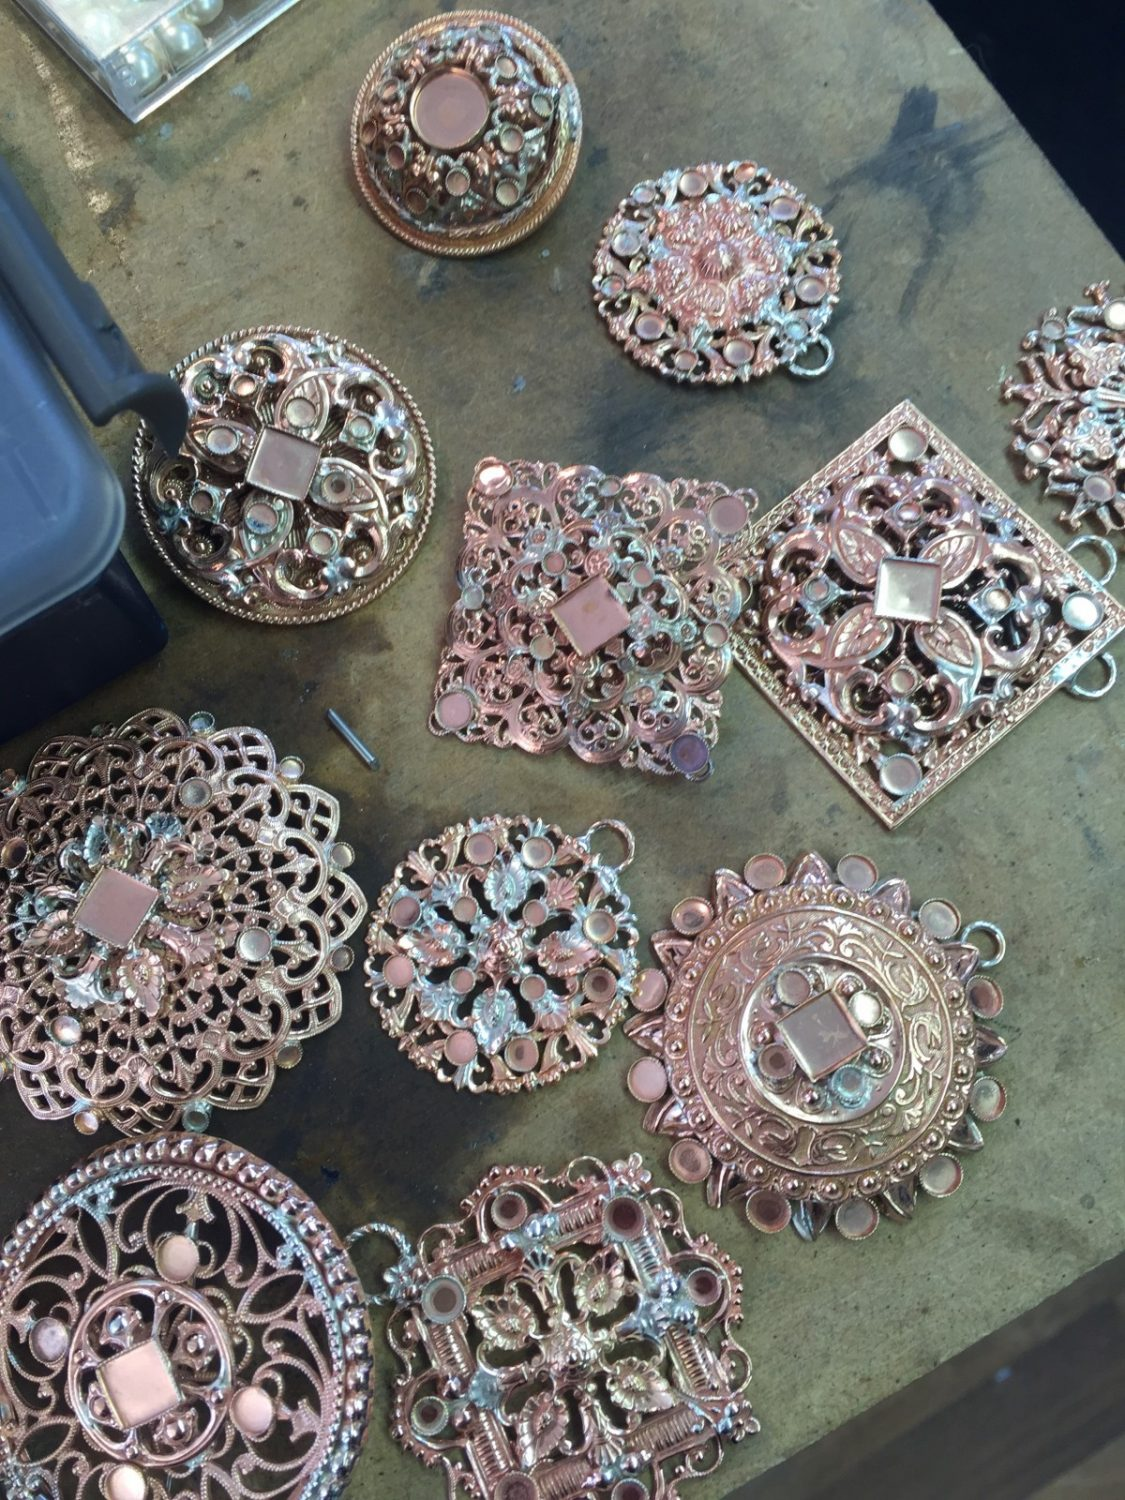 Close ups of the brooches